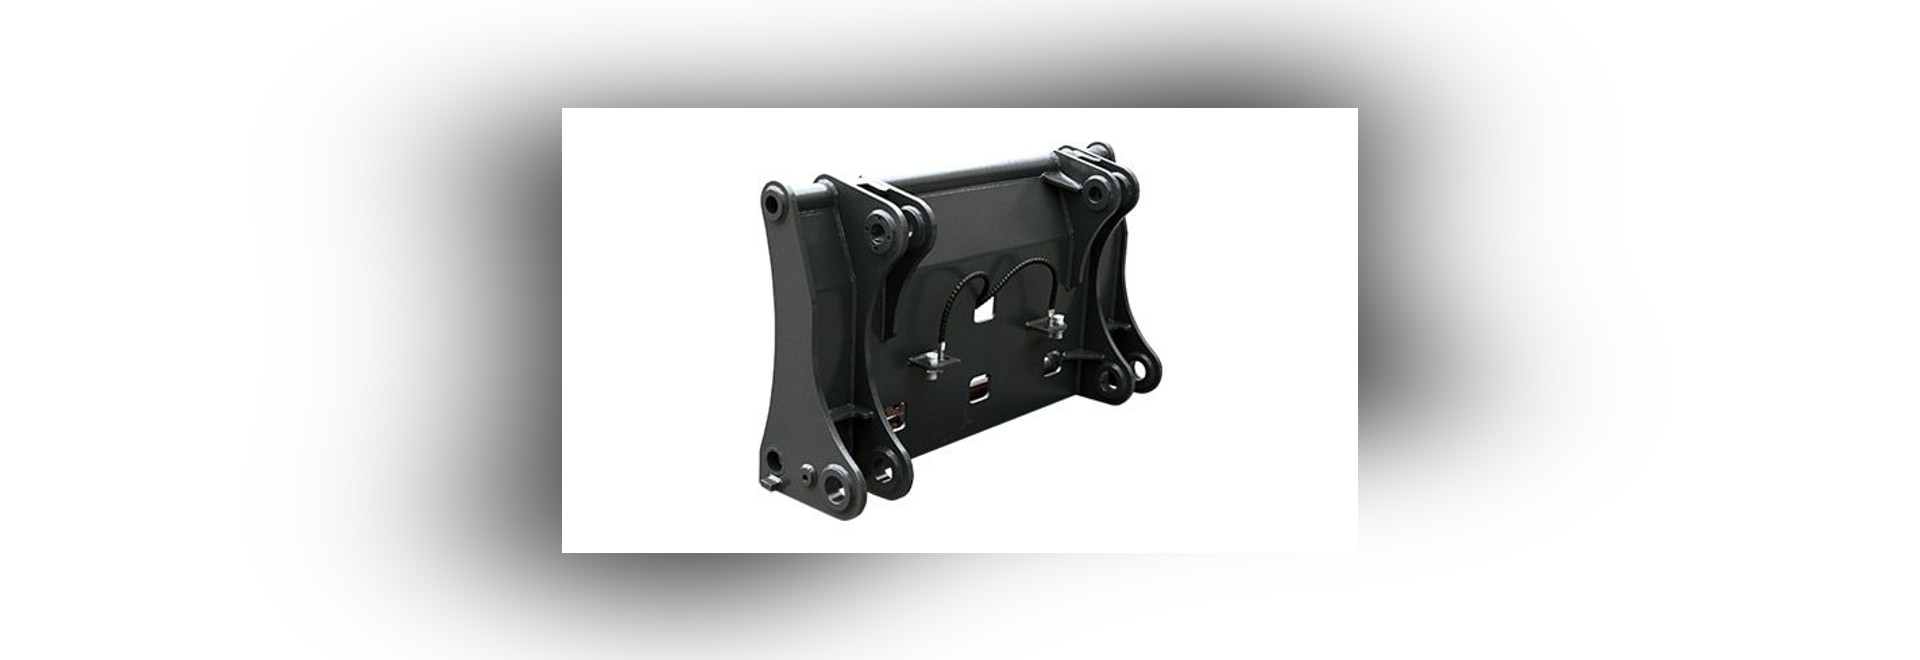 NEW: loader quick coupler by DAEWOO Construction Equipment Division